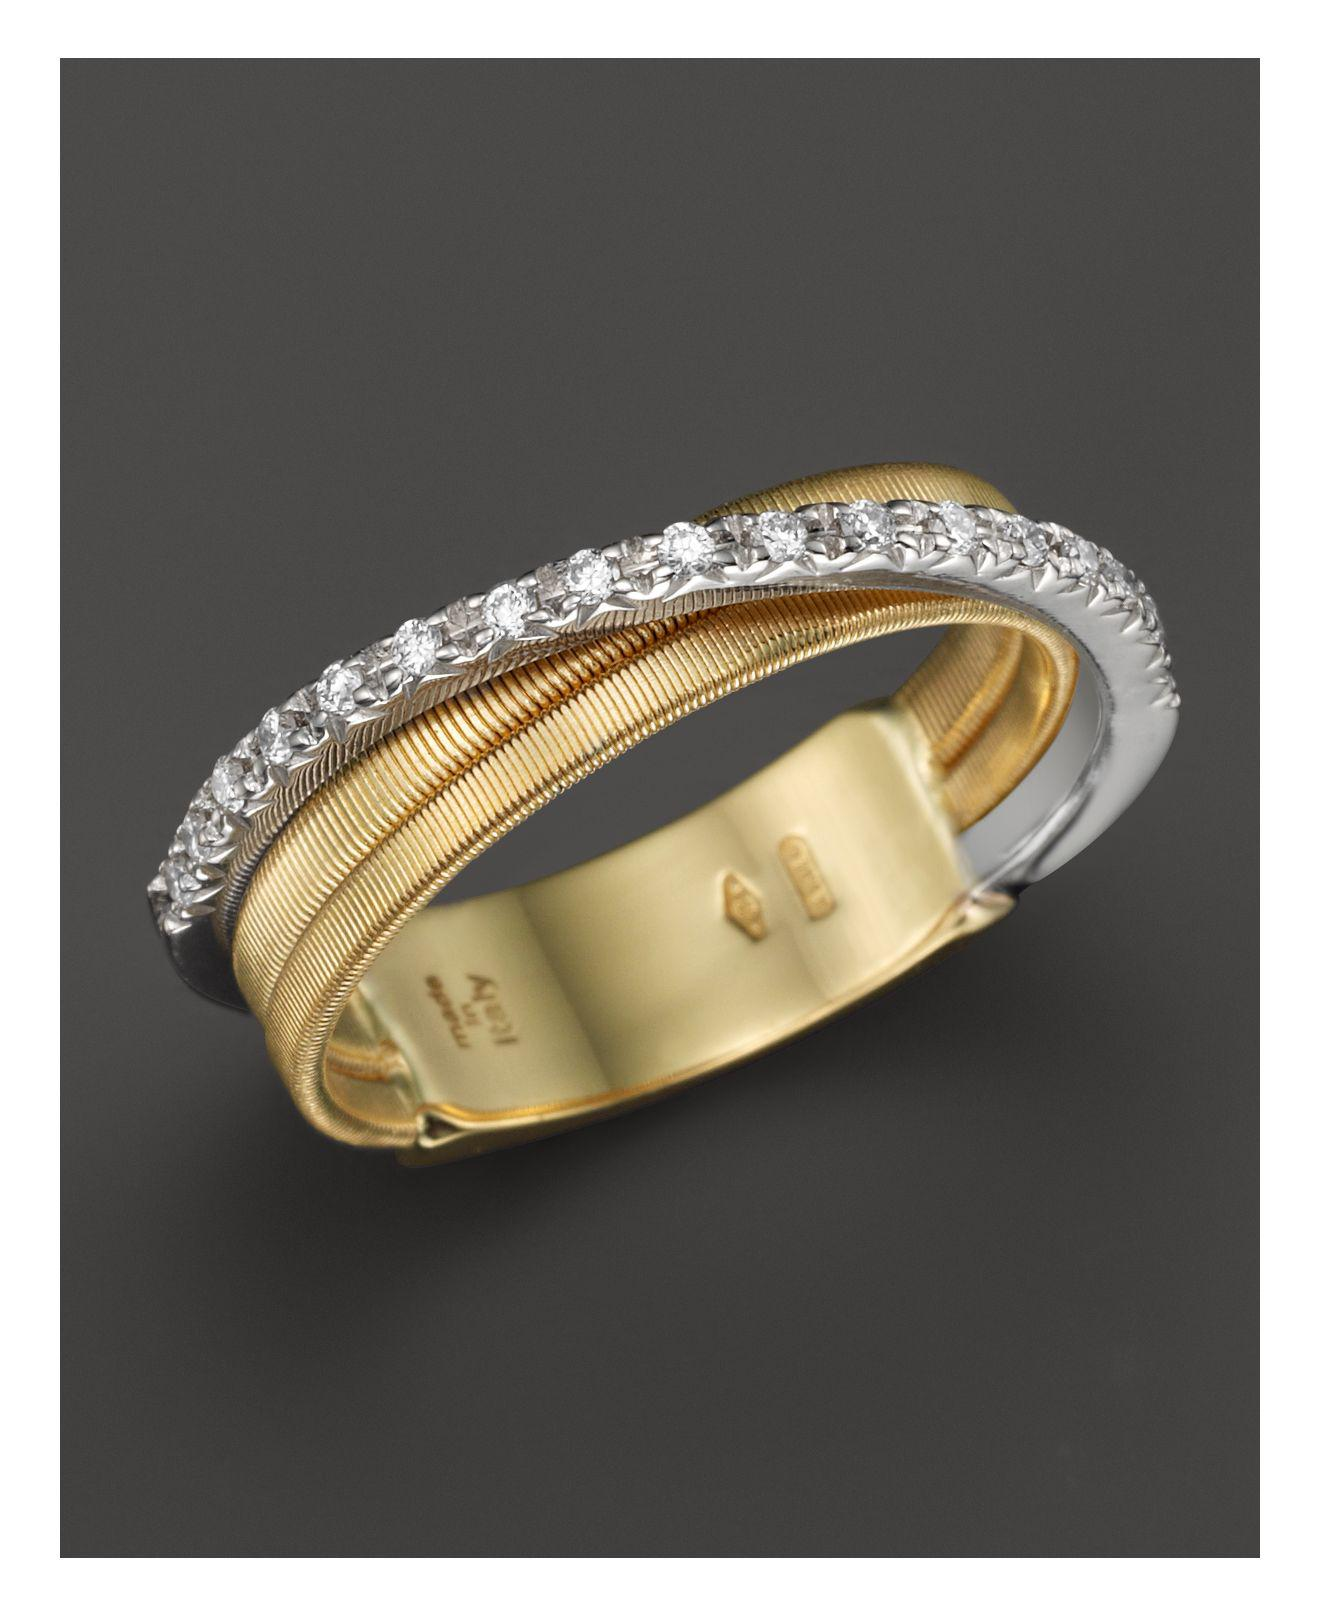 Marco Bicego Masai Three-Row 18K White & Yellow Ring with Diamonds y6vwiLSqT